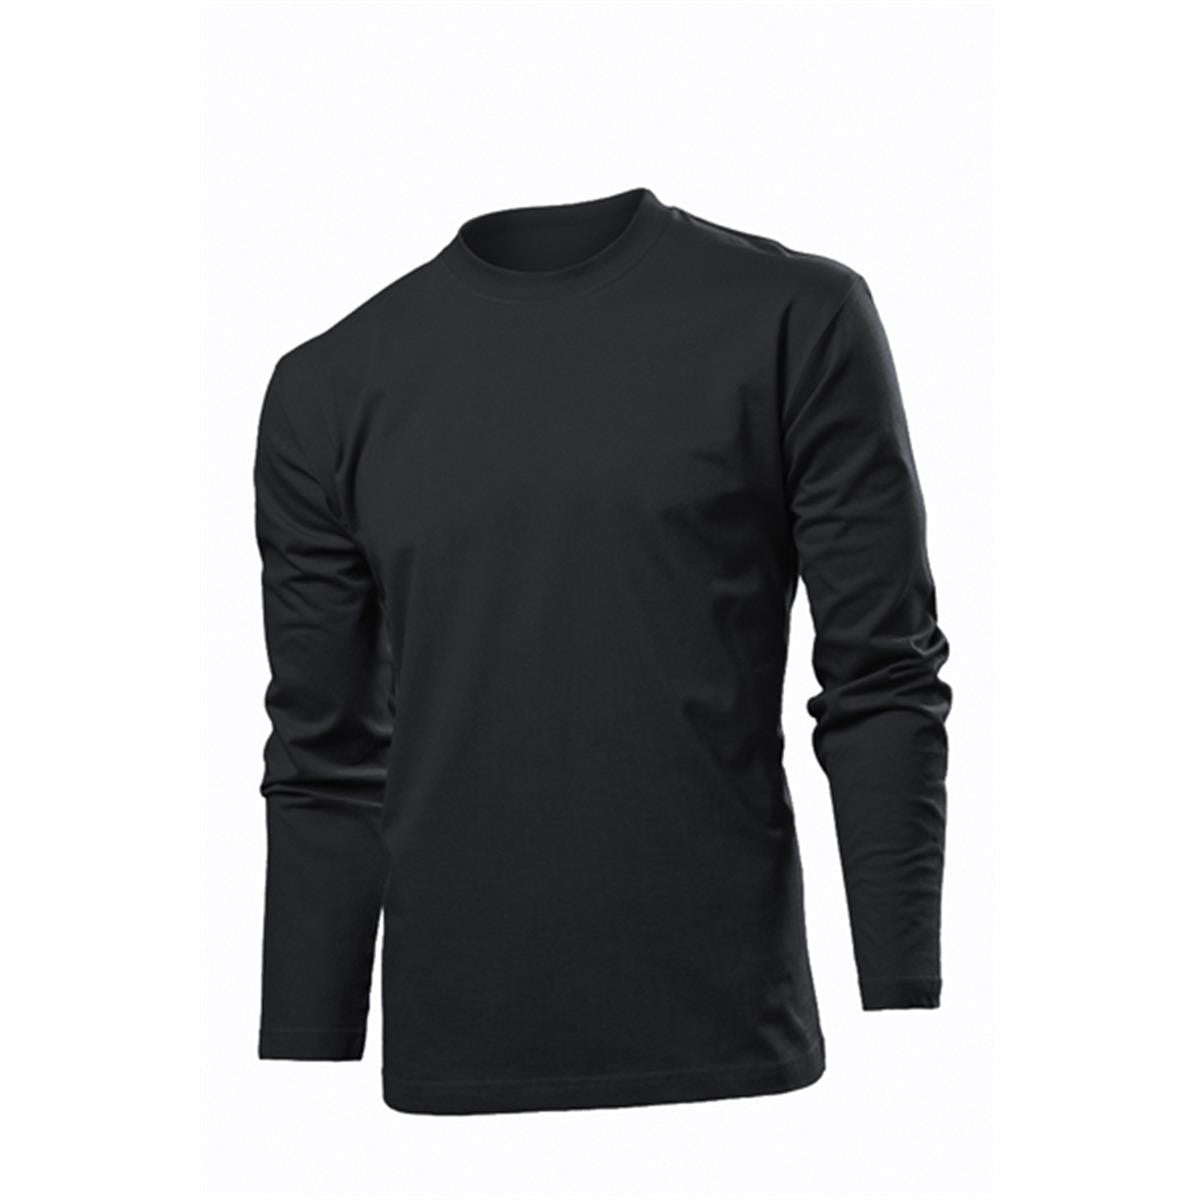 Men's Heavy Long Sleeve T-shirt